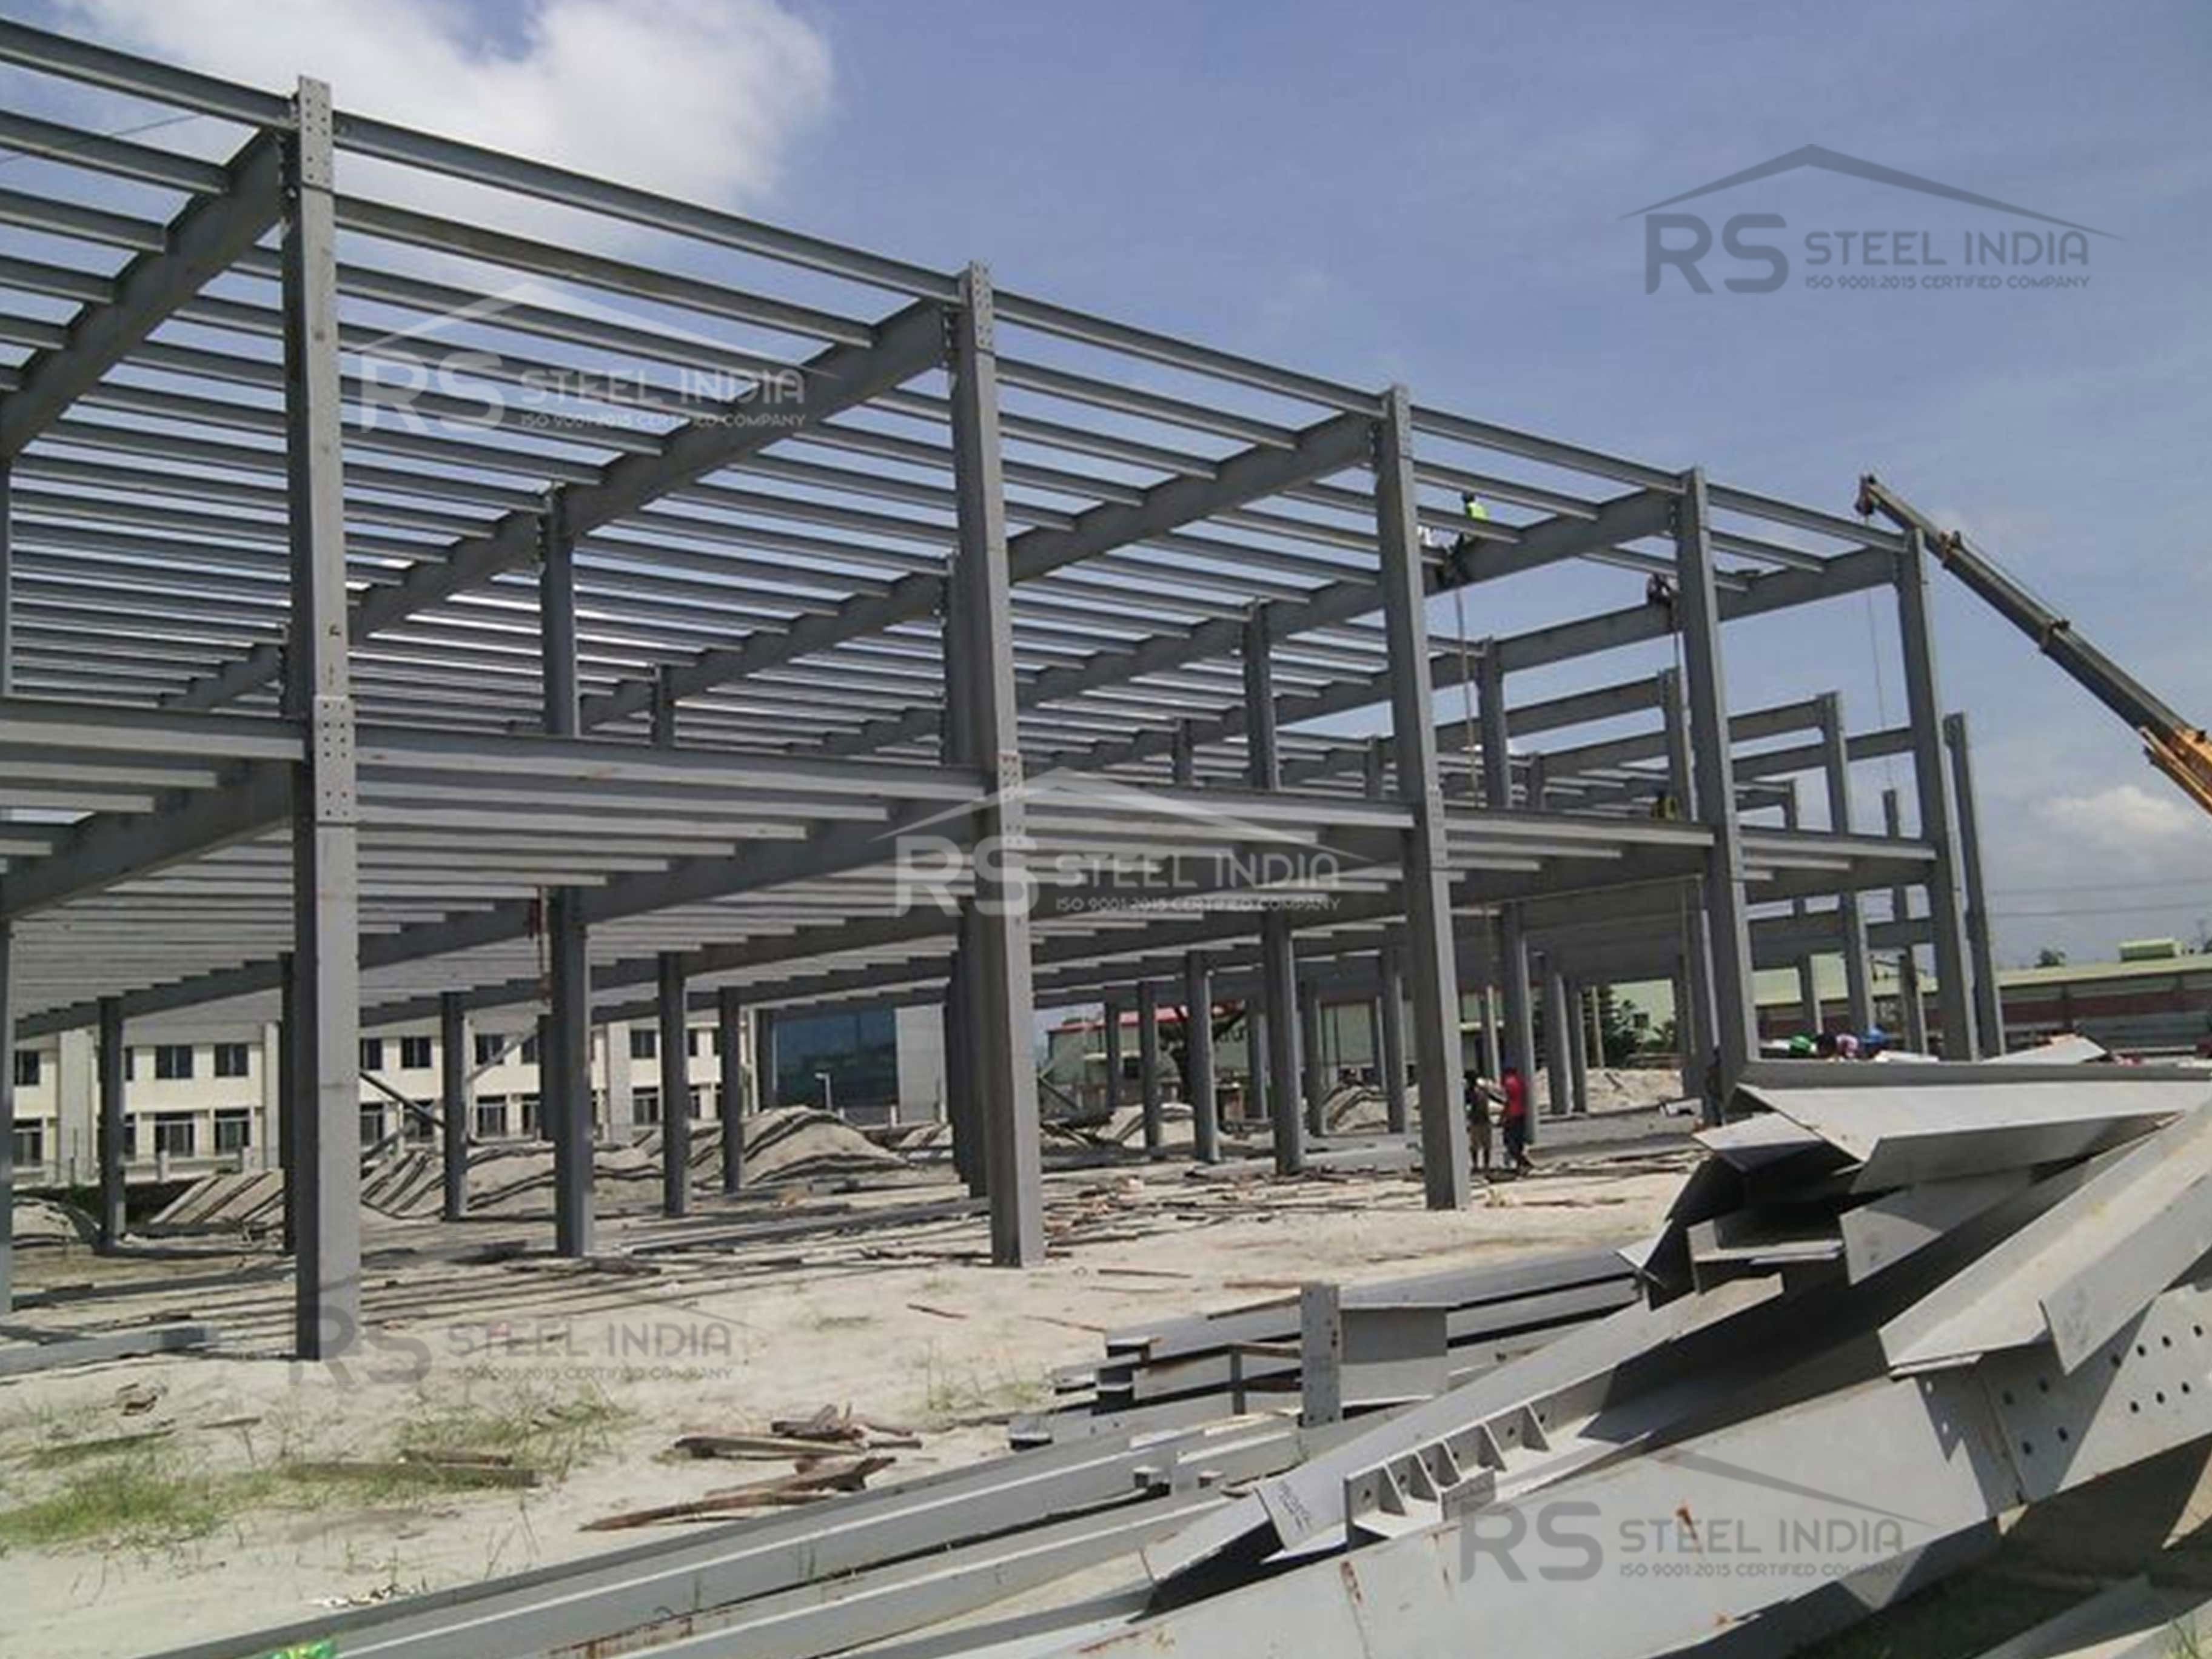 Rs Steel India is an ISO Certified Company. It's a leading